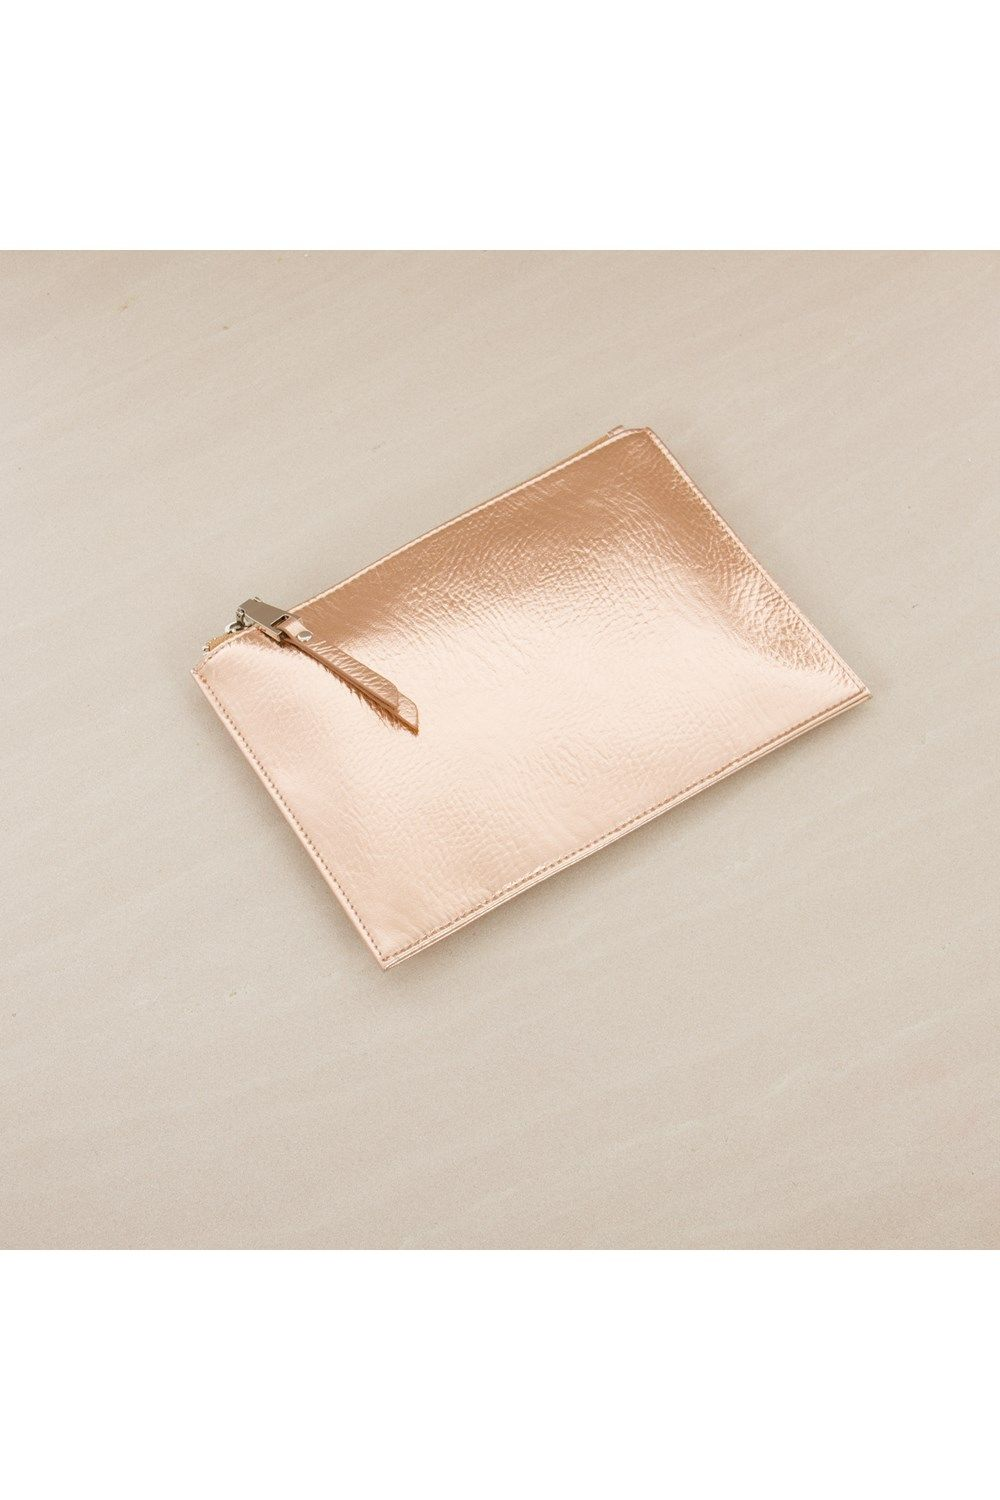 Clutch Society - Metallic Zip Top Simple Clutch - Adorne